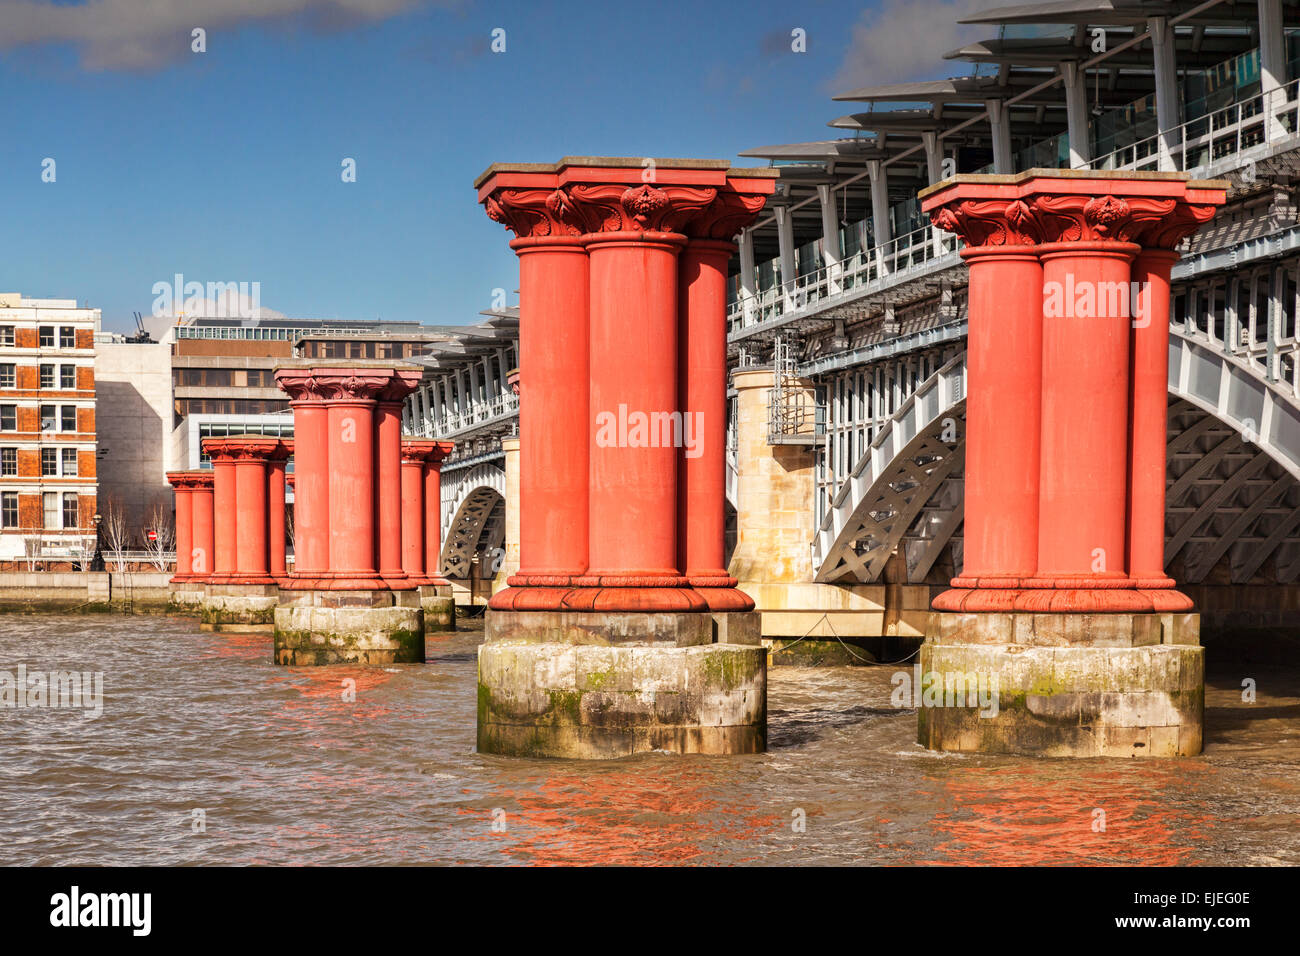 Blackfriars Railway Bridge, and the pillars of an older bridge which has been removed, London, England. - Stock Image